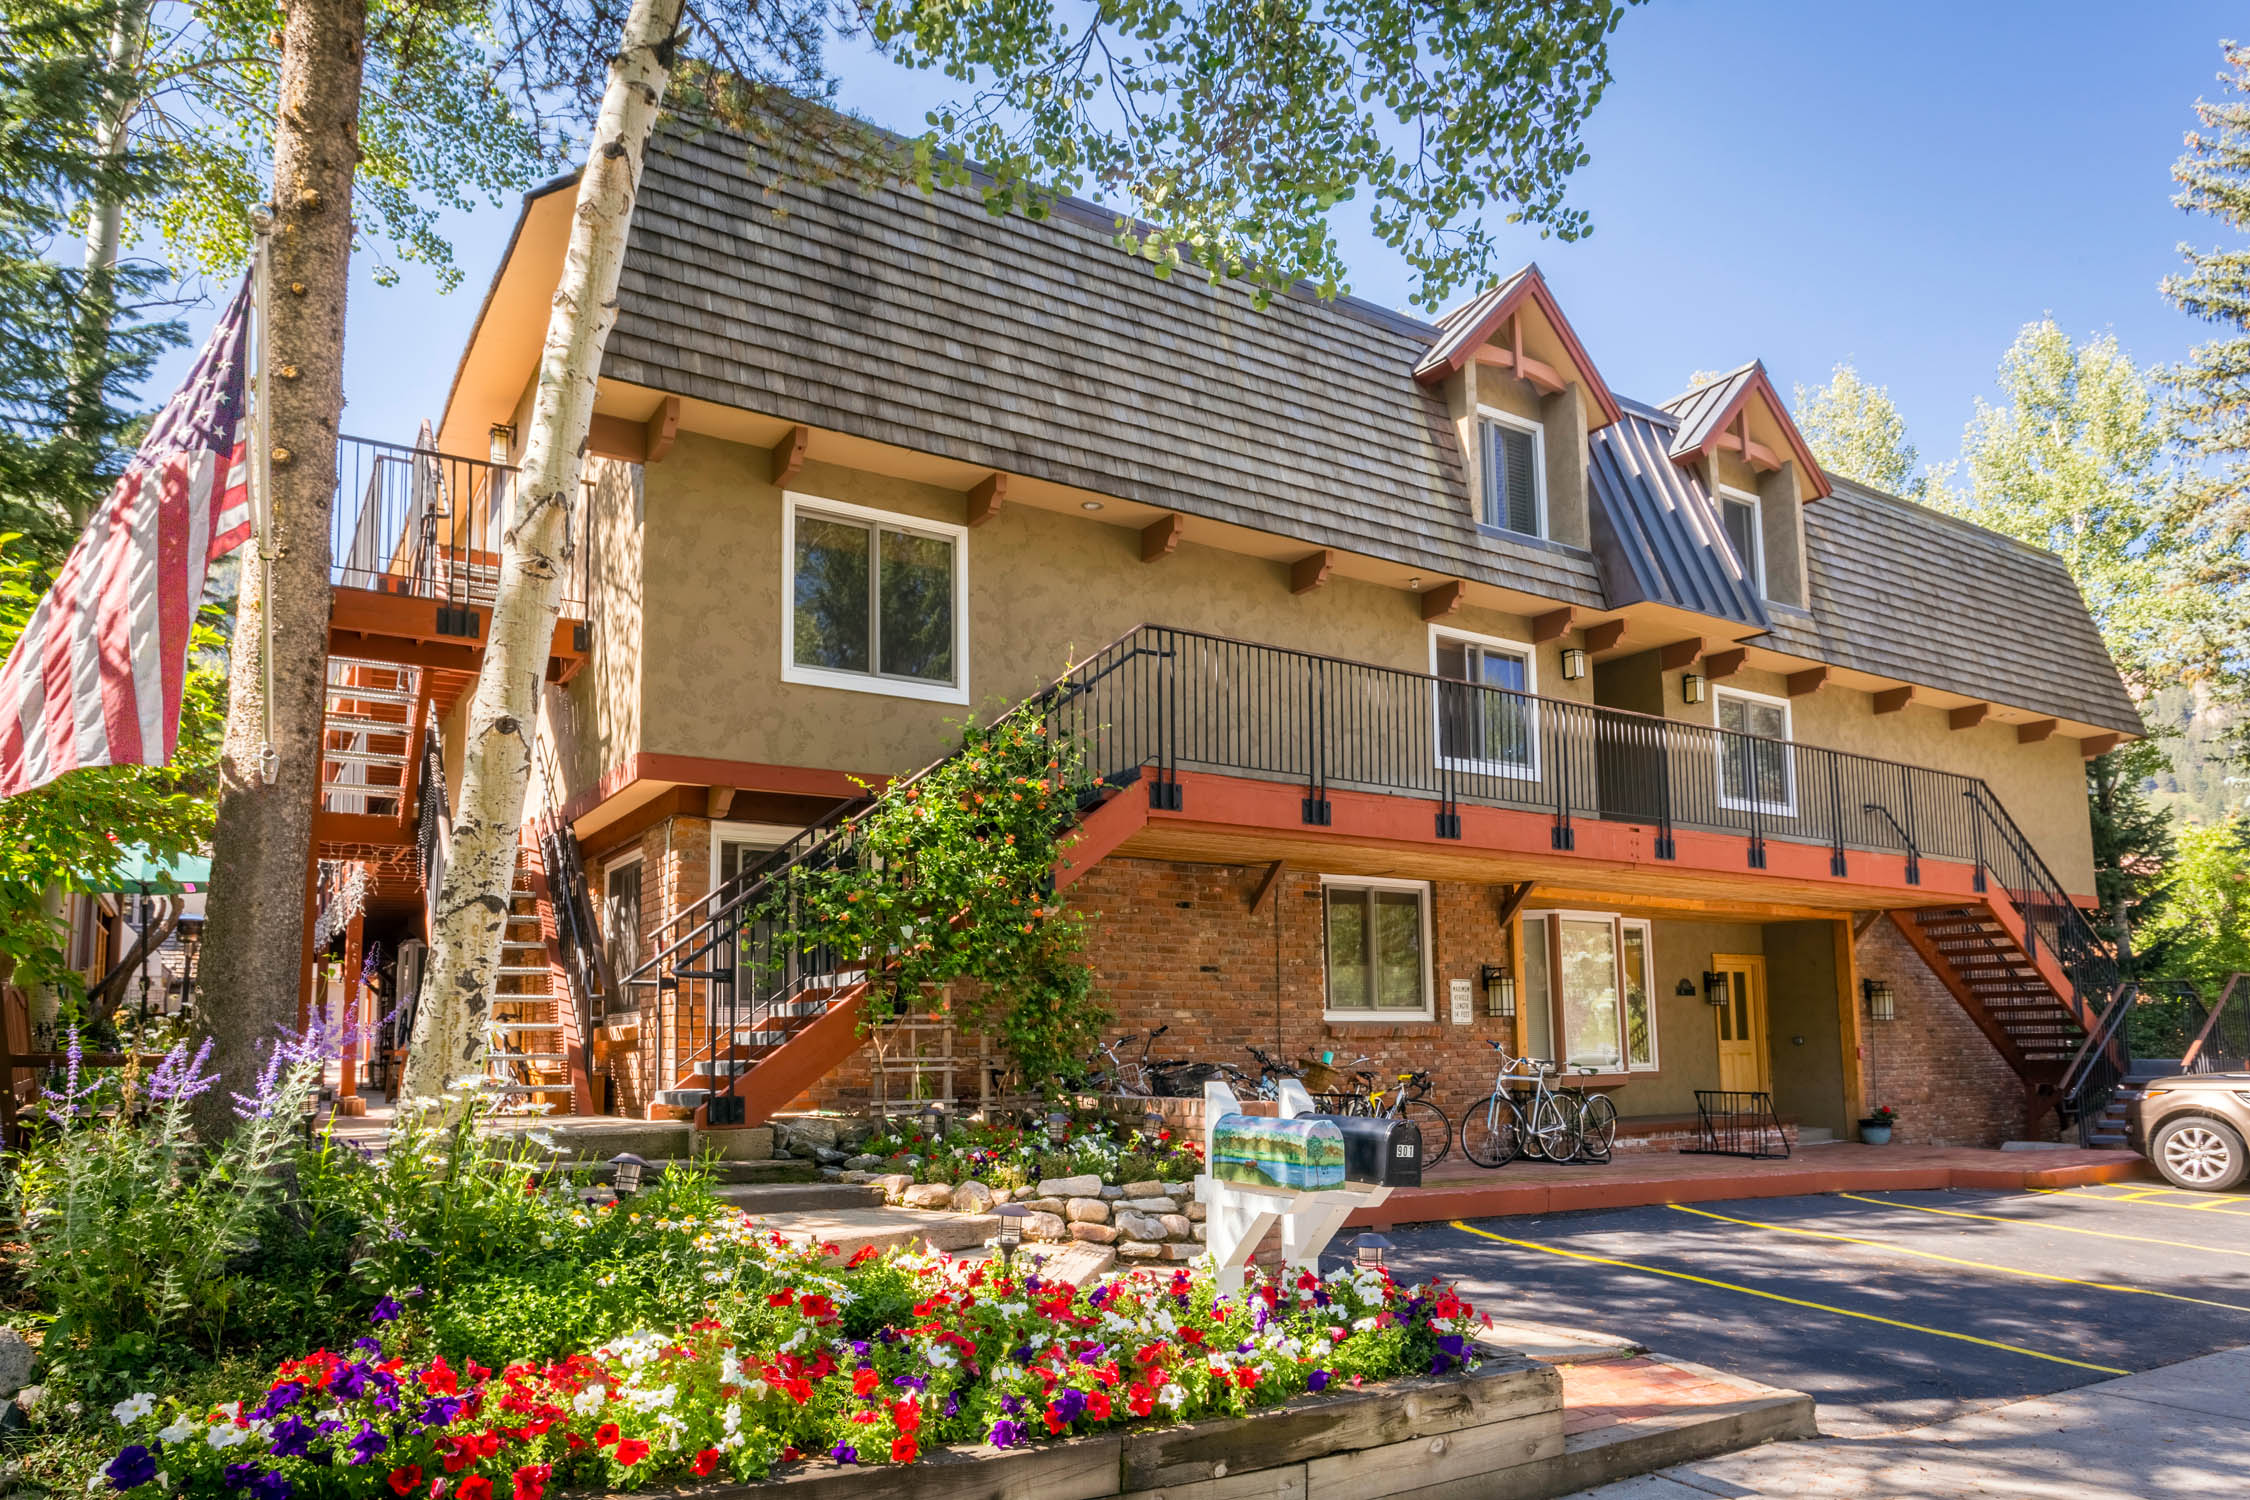 Chateau Blanc Aspen vacation rentals